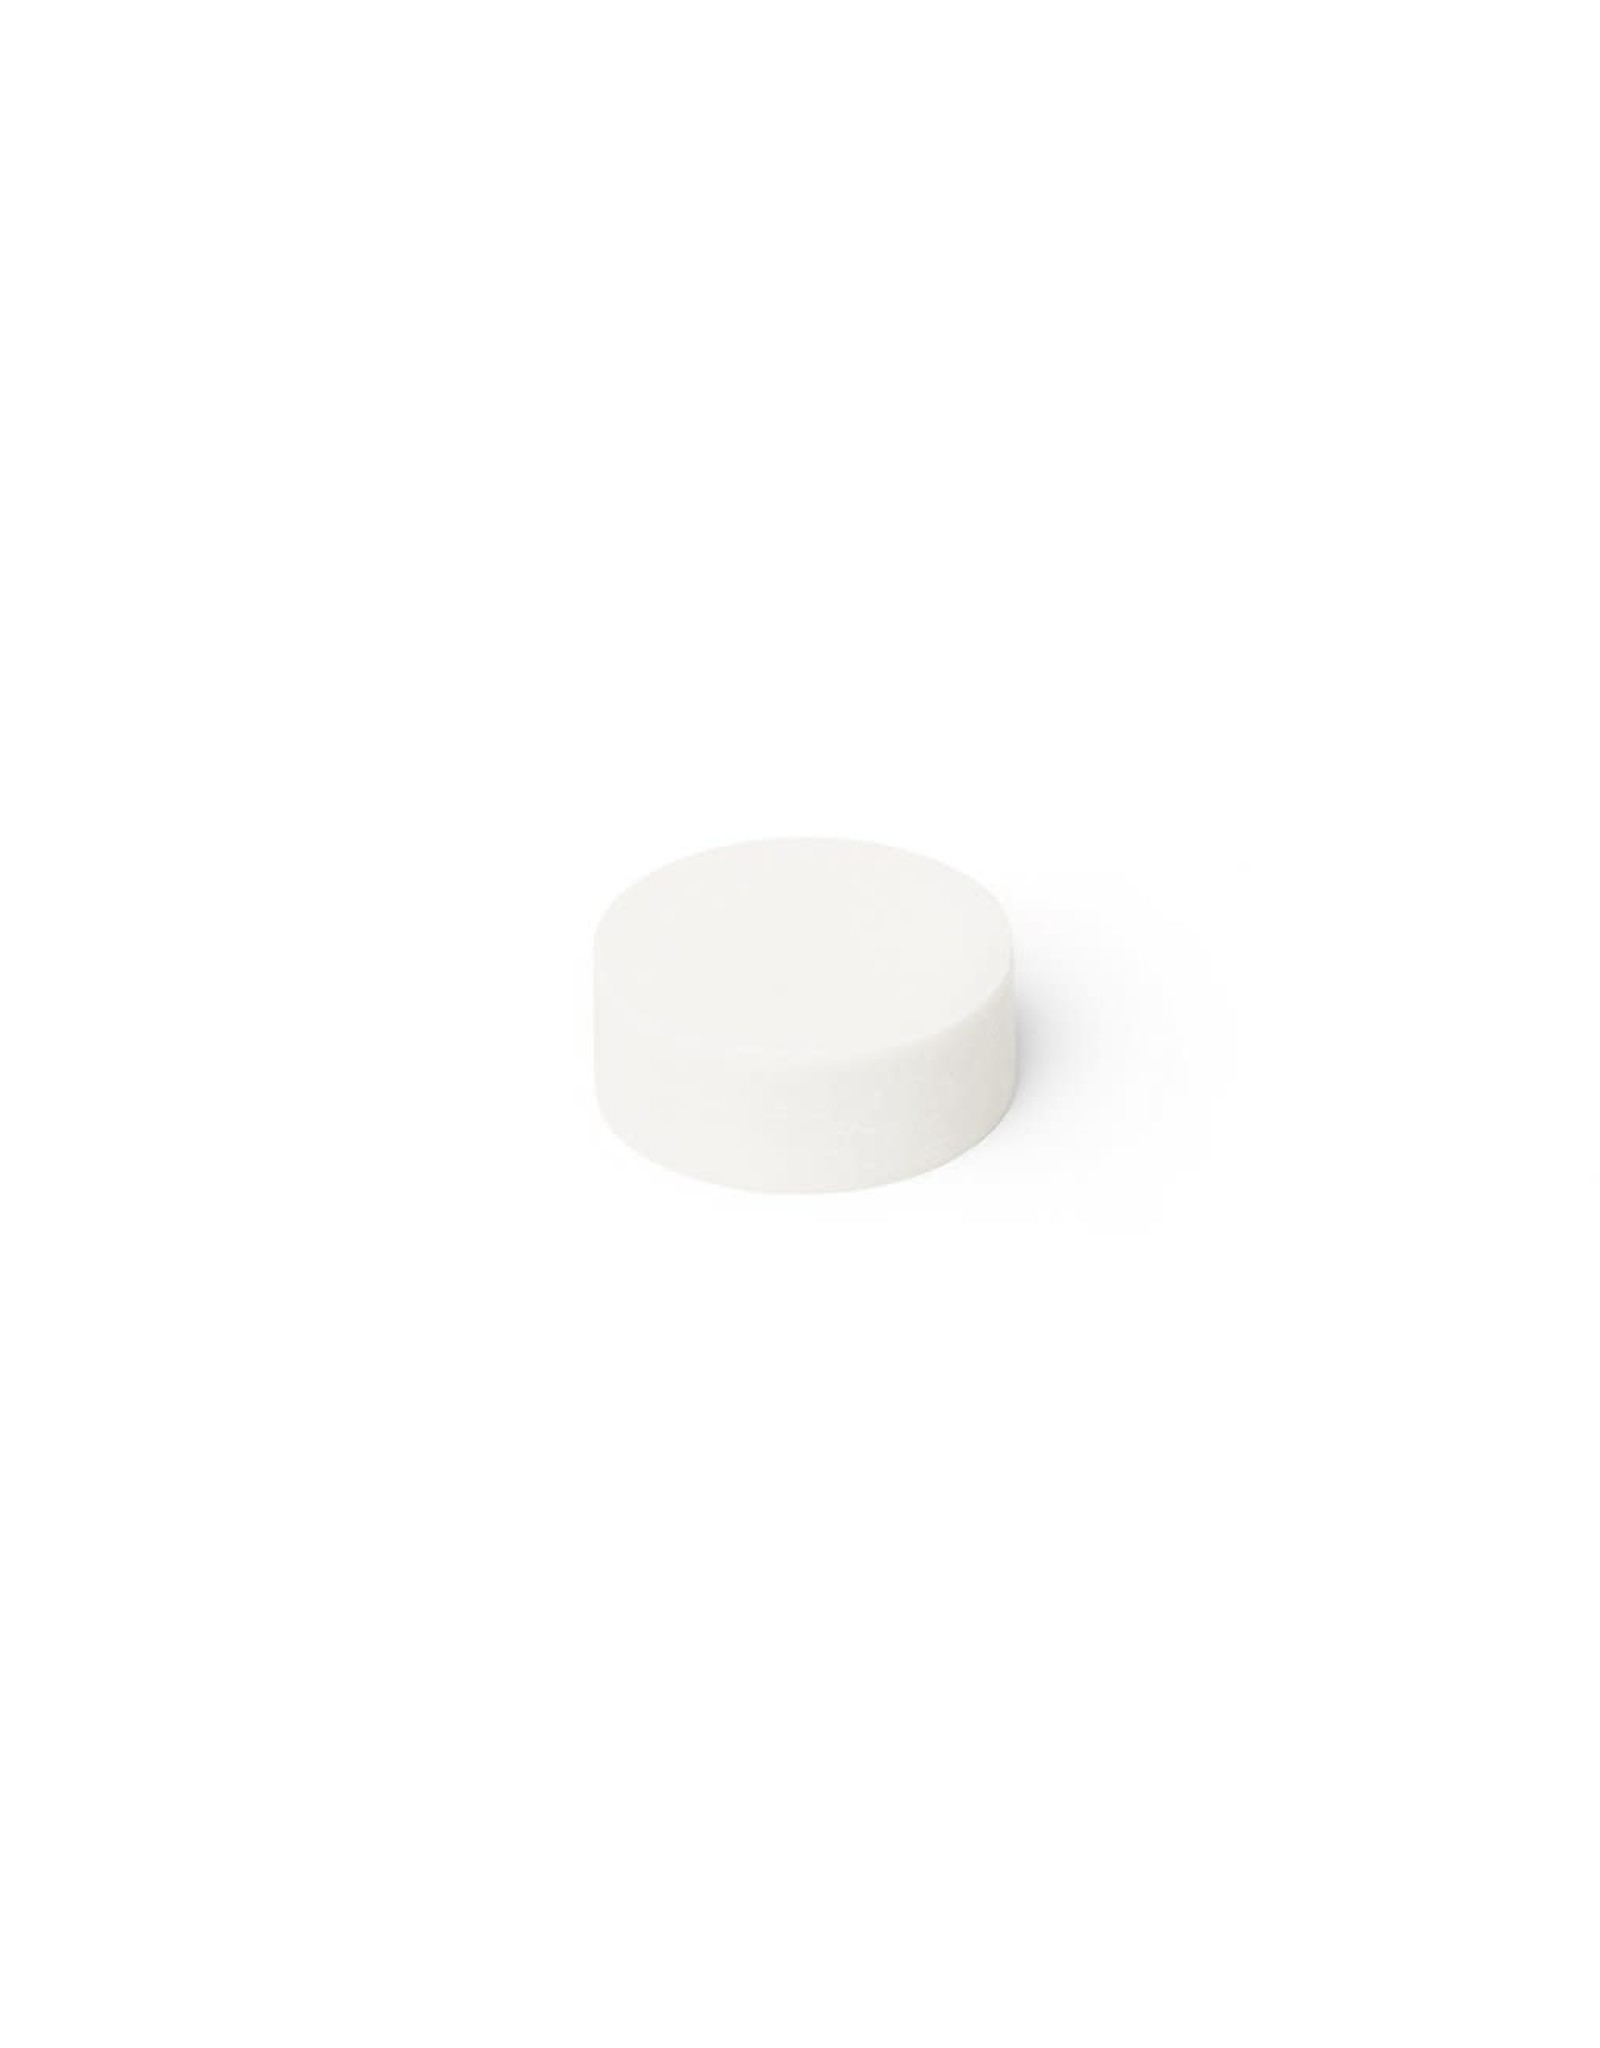 Unwrapped Life Aspen Unscented Conditioner Bar